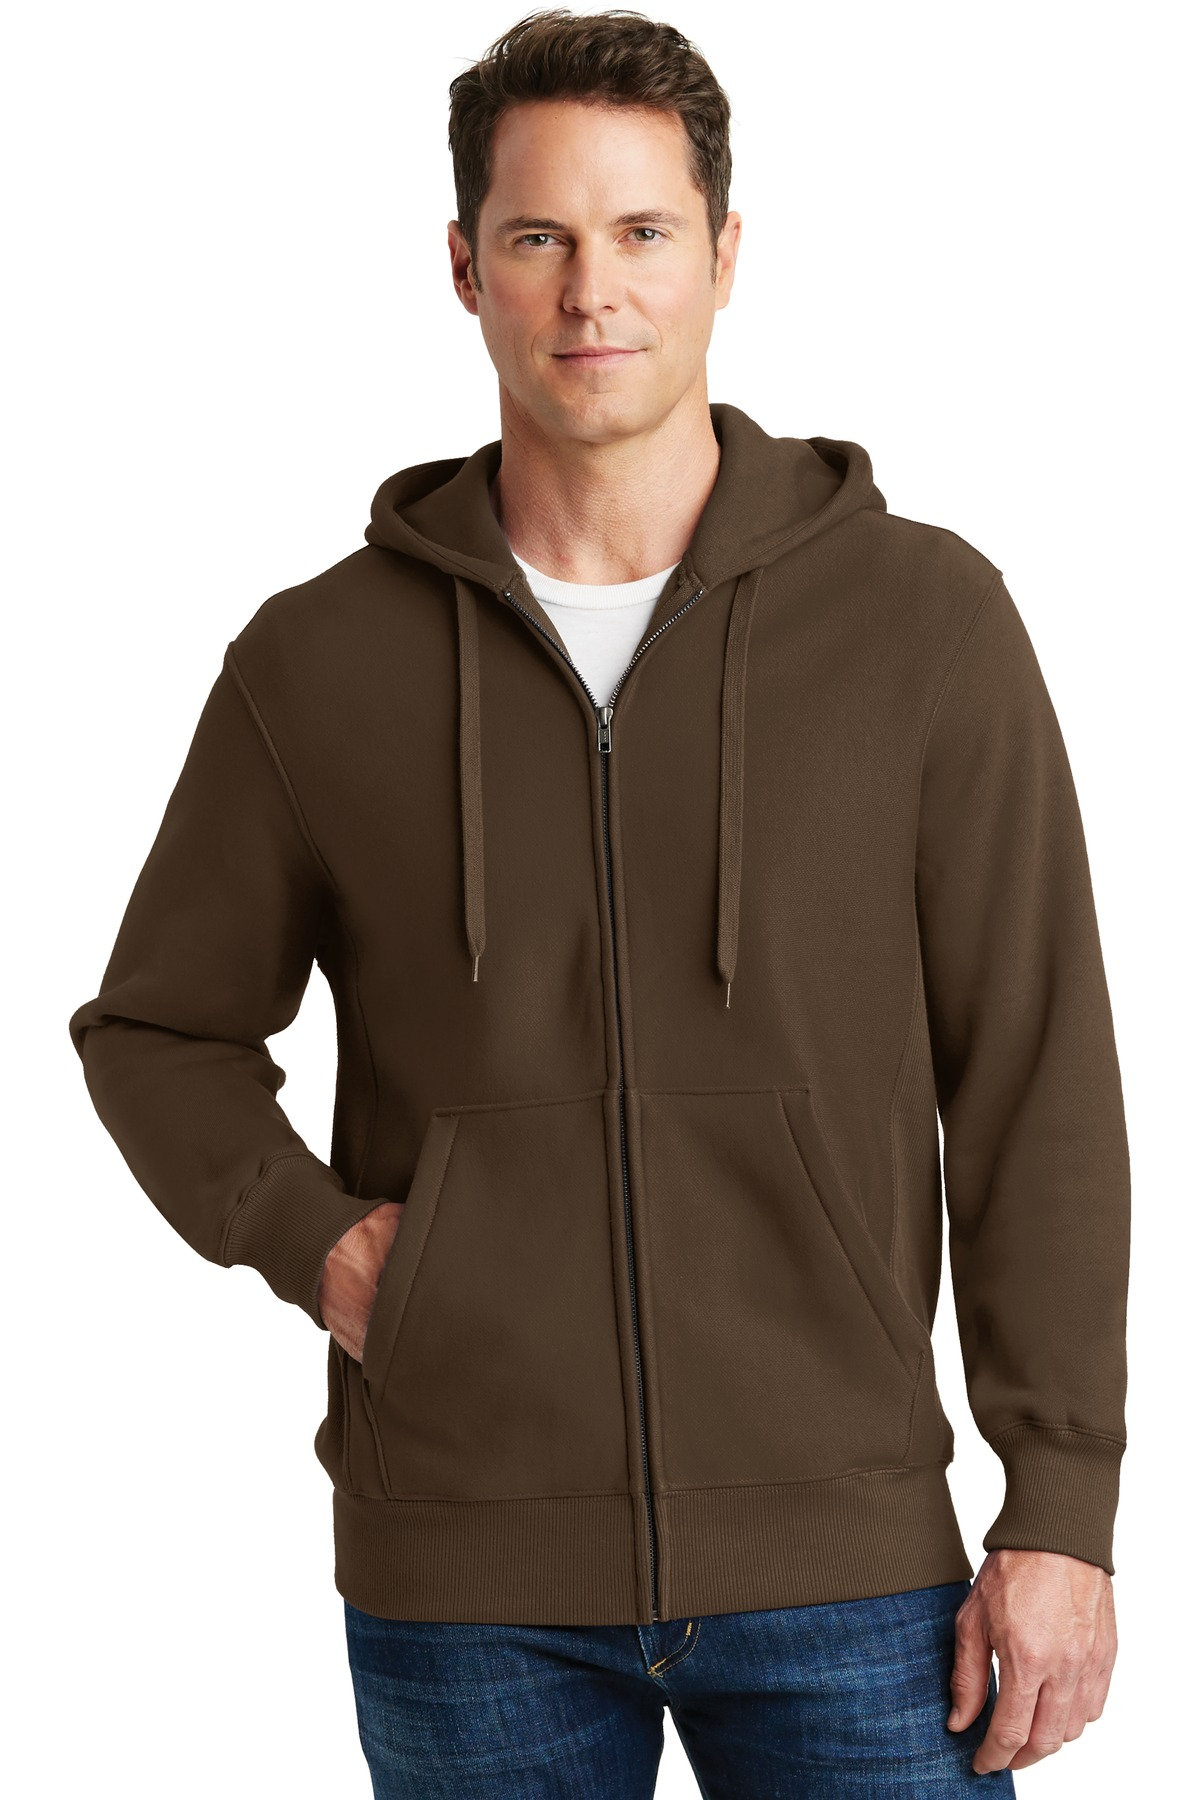 Sport-Tek ®  Super Heavyweight Full-Zip Hooded Sweatshirt.  F282 - Brown